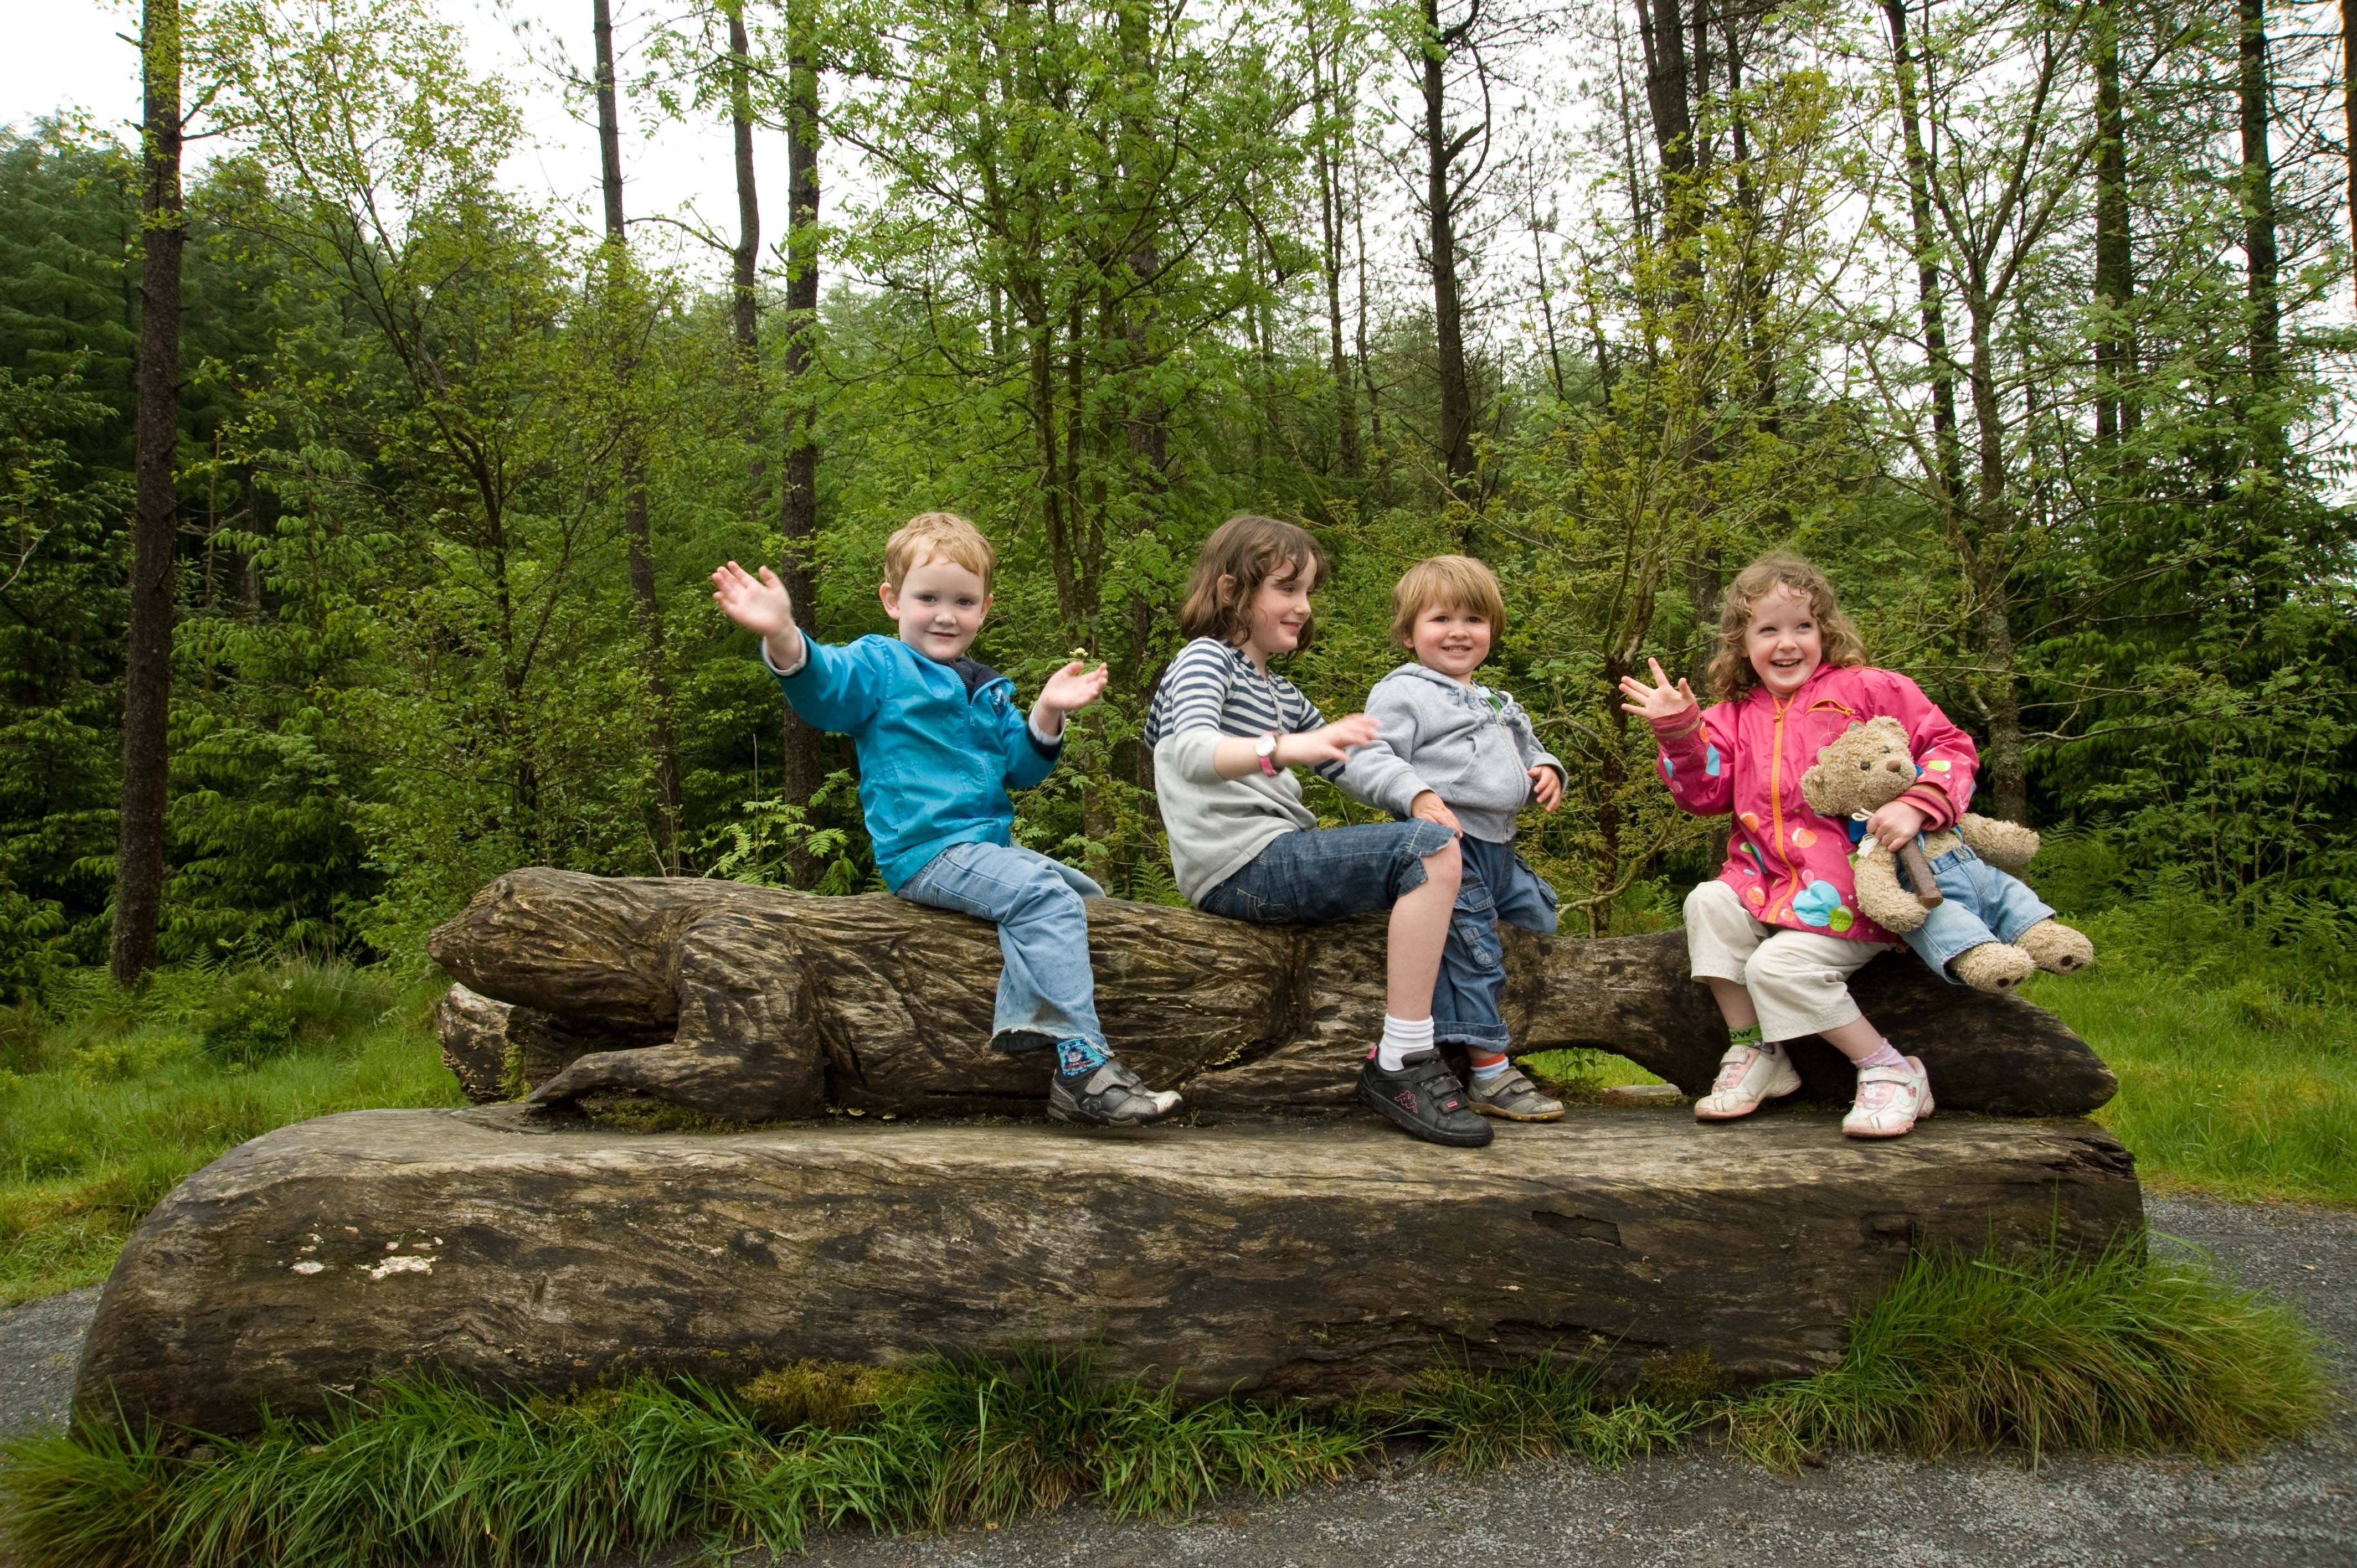 Group of children sitting on a log